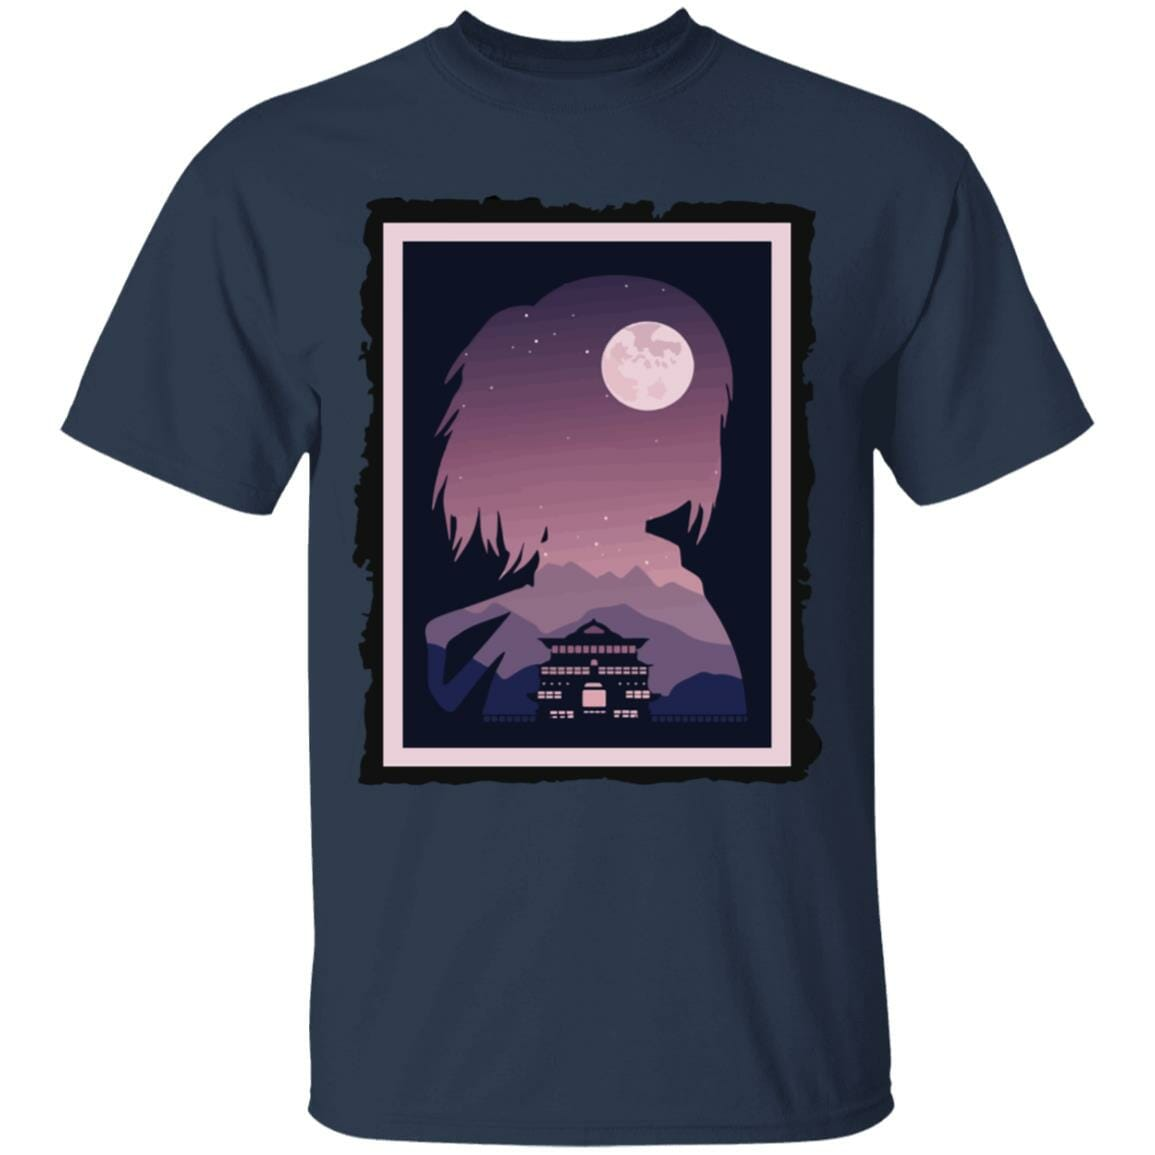 Spirited Away – Sen and The Bathhouse T Shirt